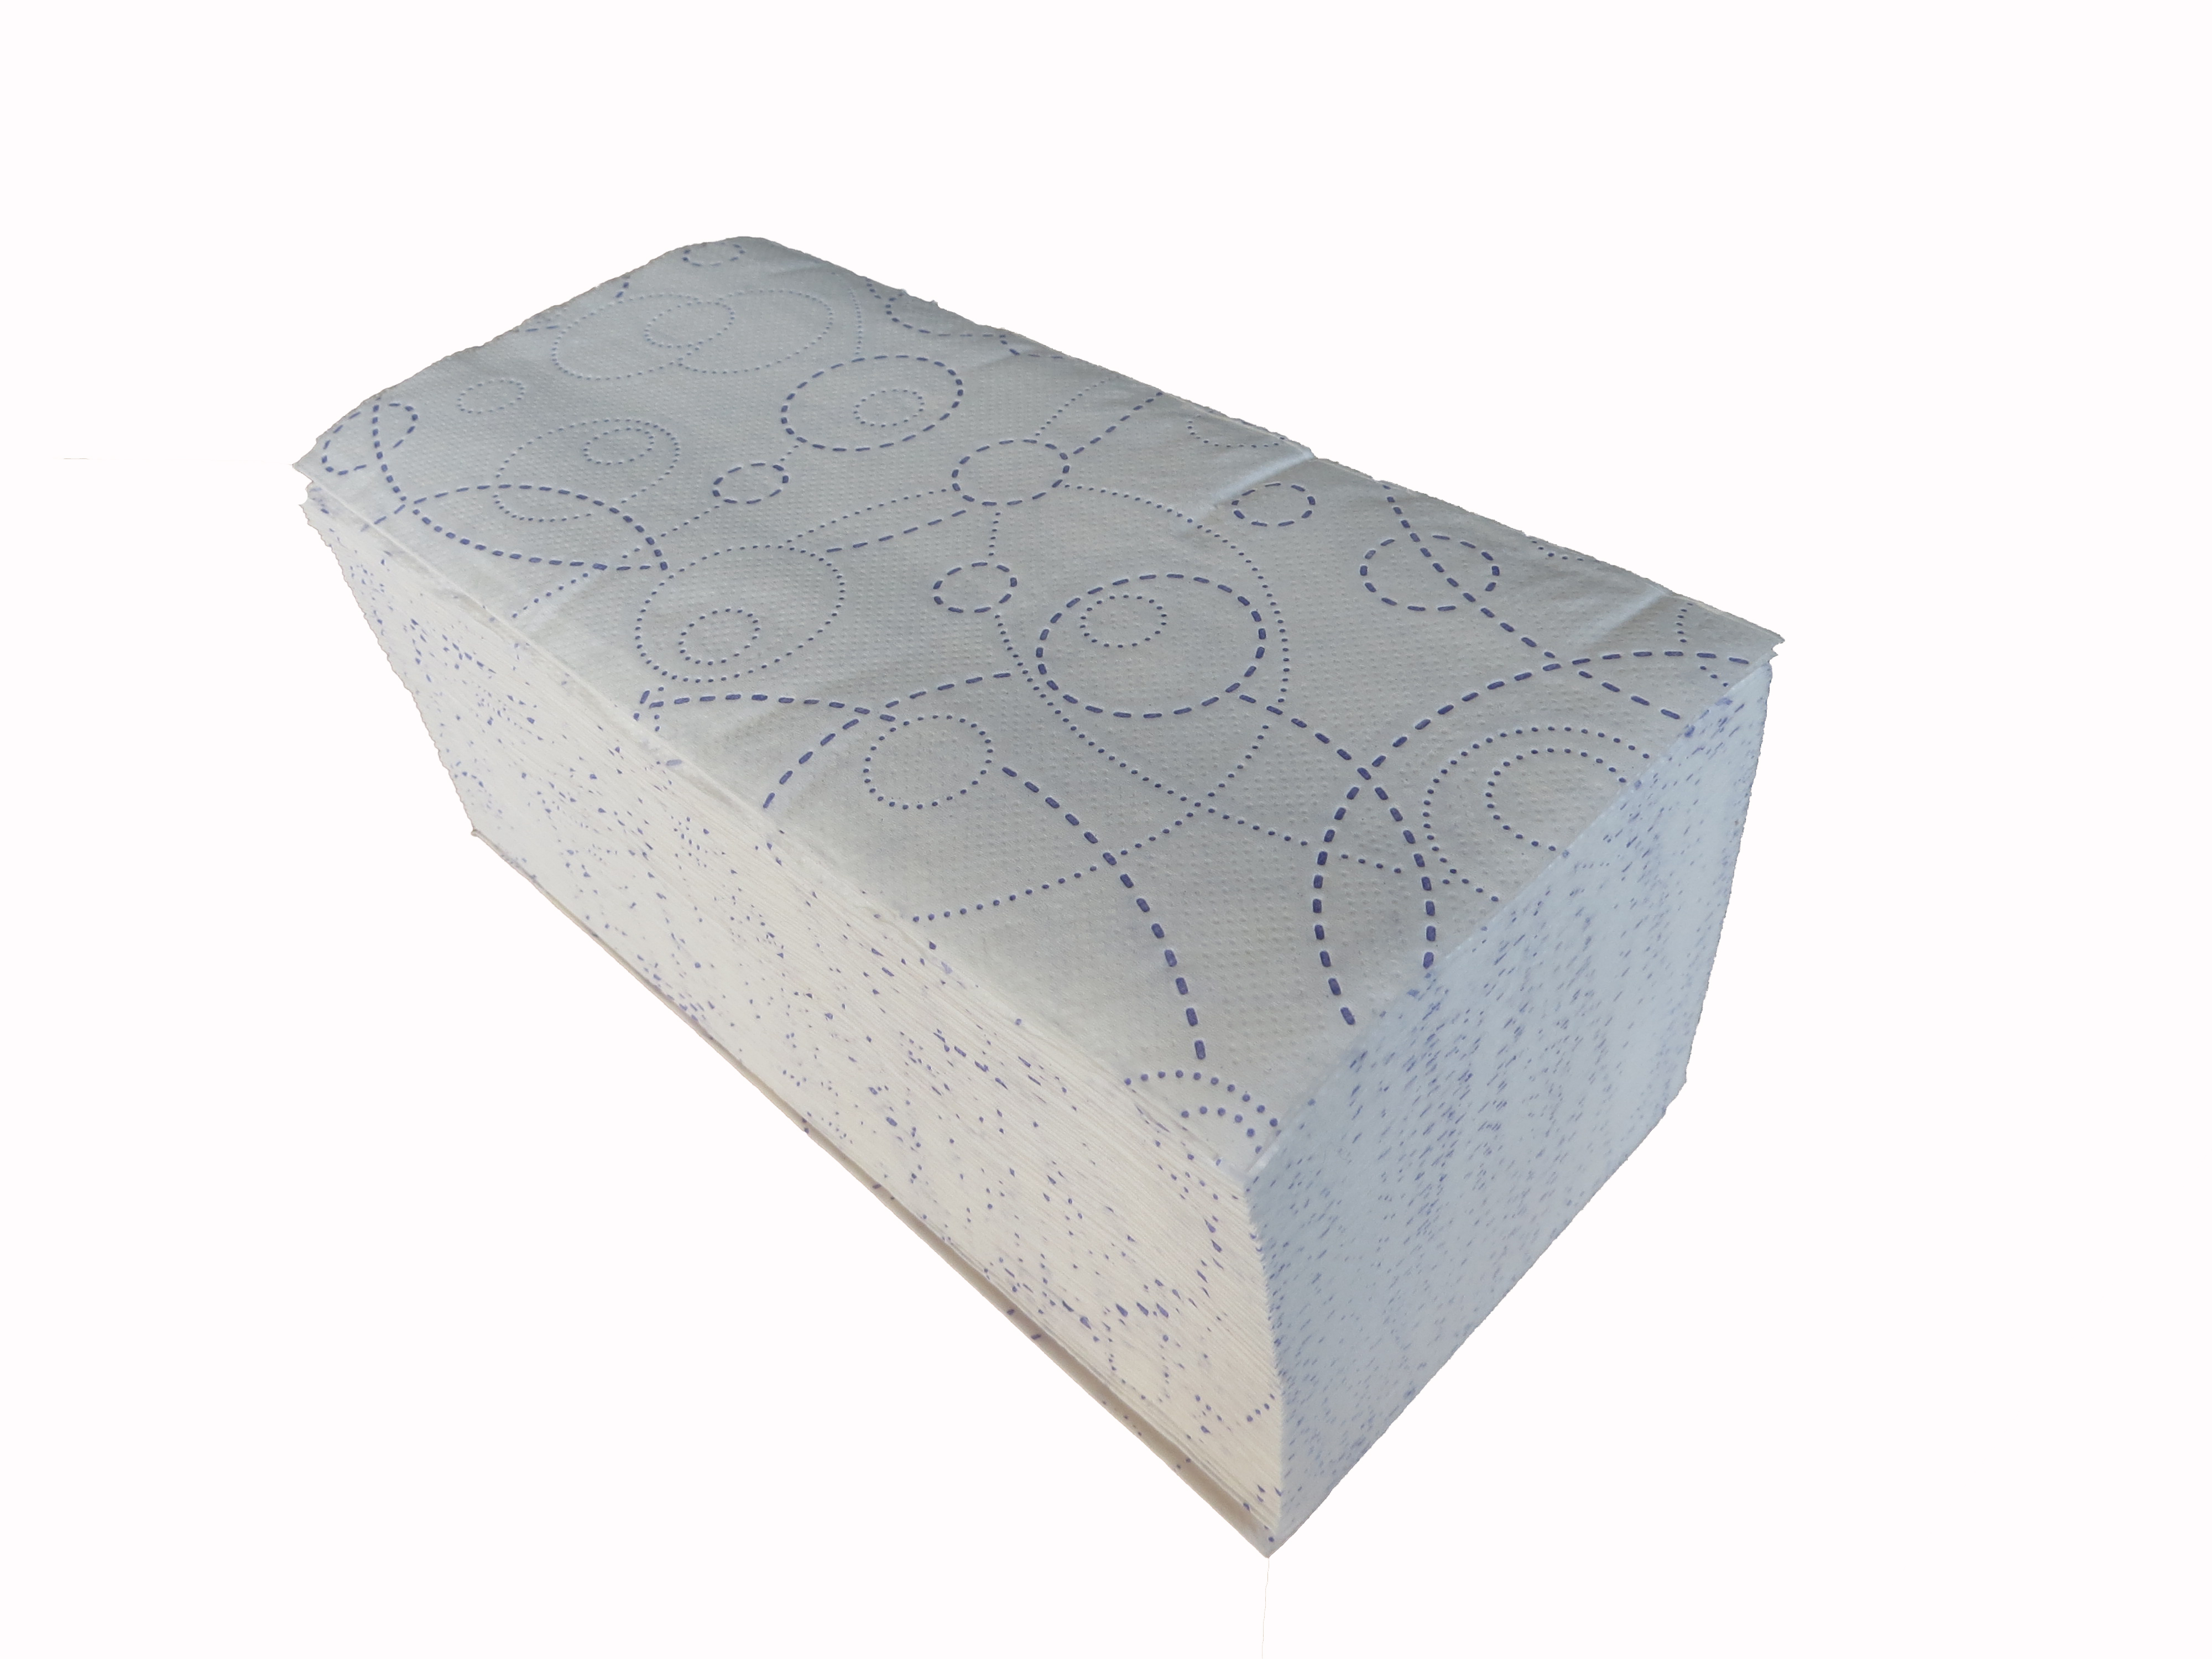 Our white inter-fold hand towels are suitable for all washroom environments. White inter-fold hand towels when dispensed can present the next towel ready for use reducing cross contamination.